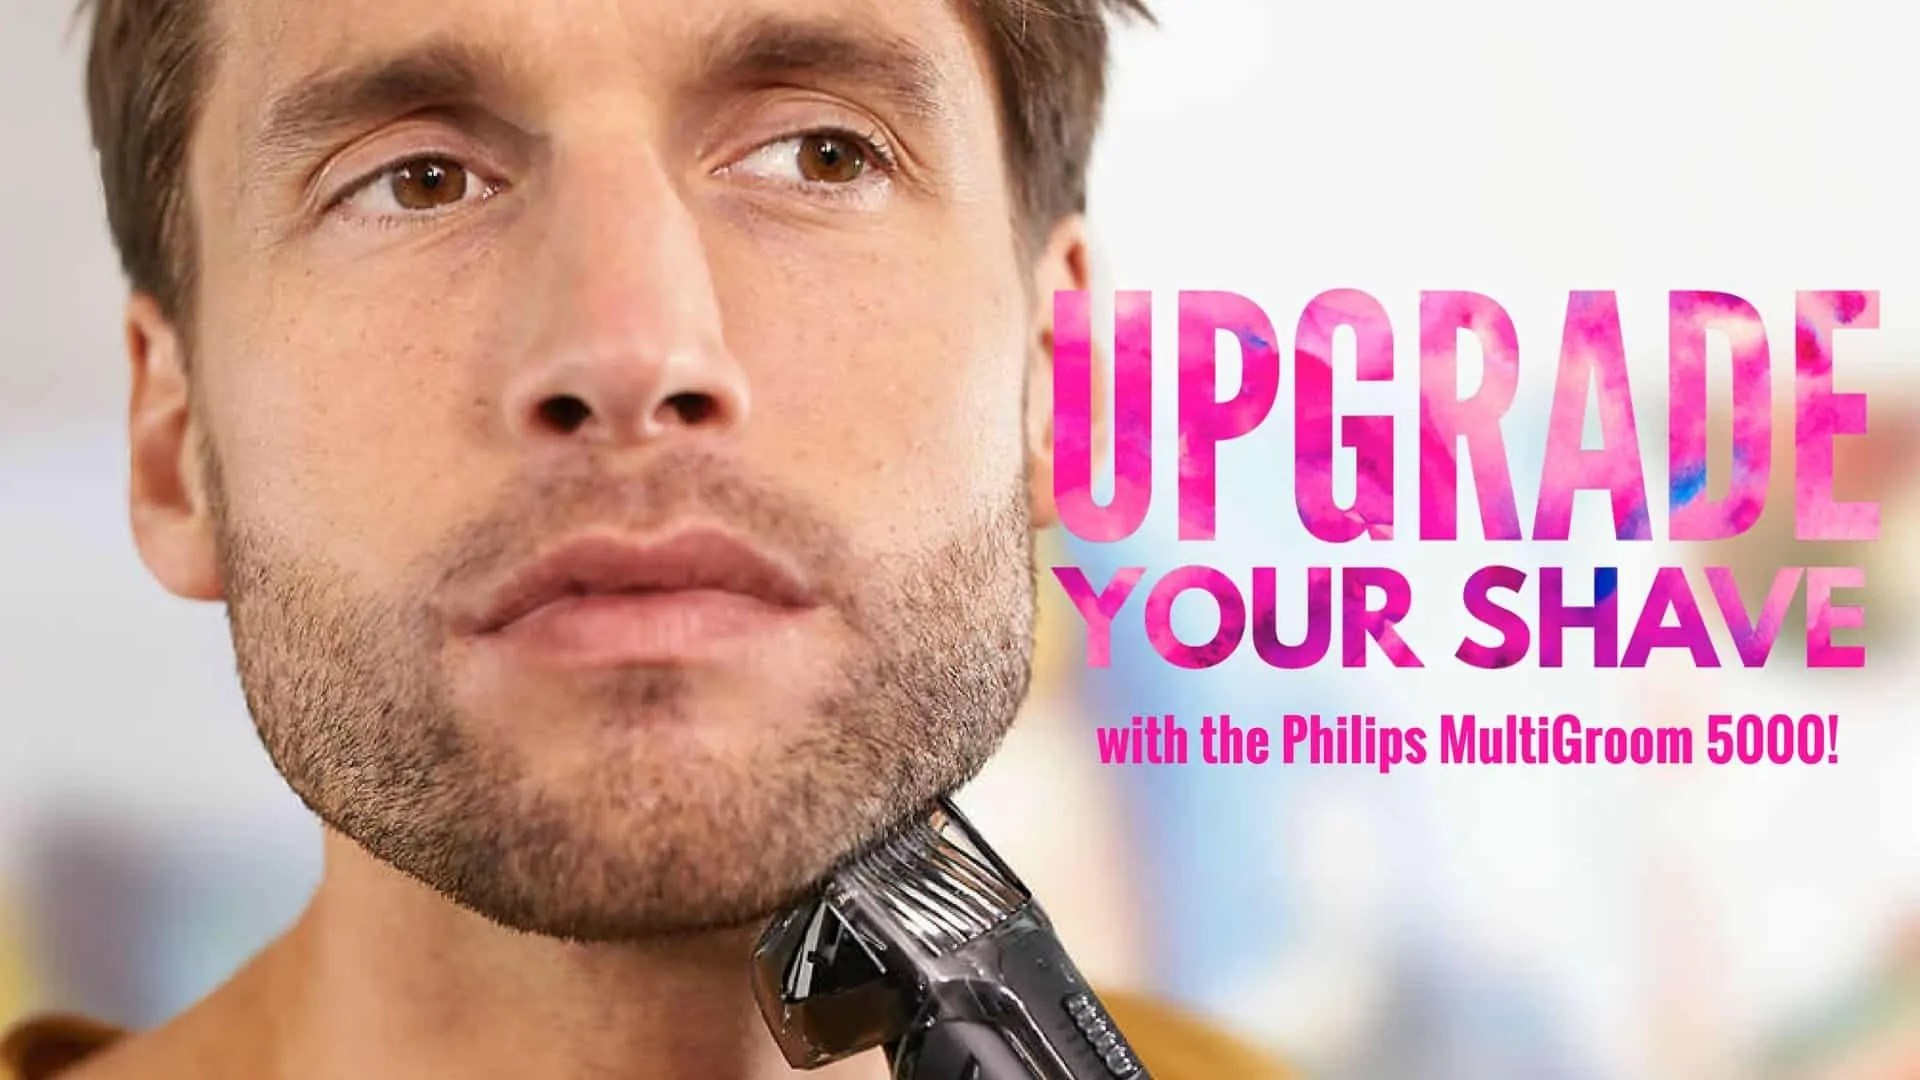 Upgrade Your Shave with the Philips MultiGroom 5000! (Featured Image)